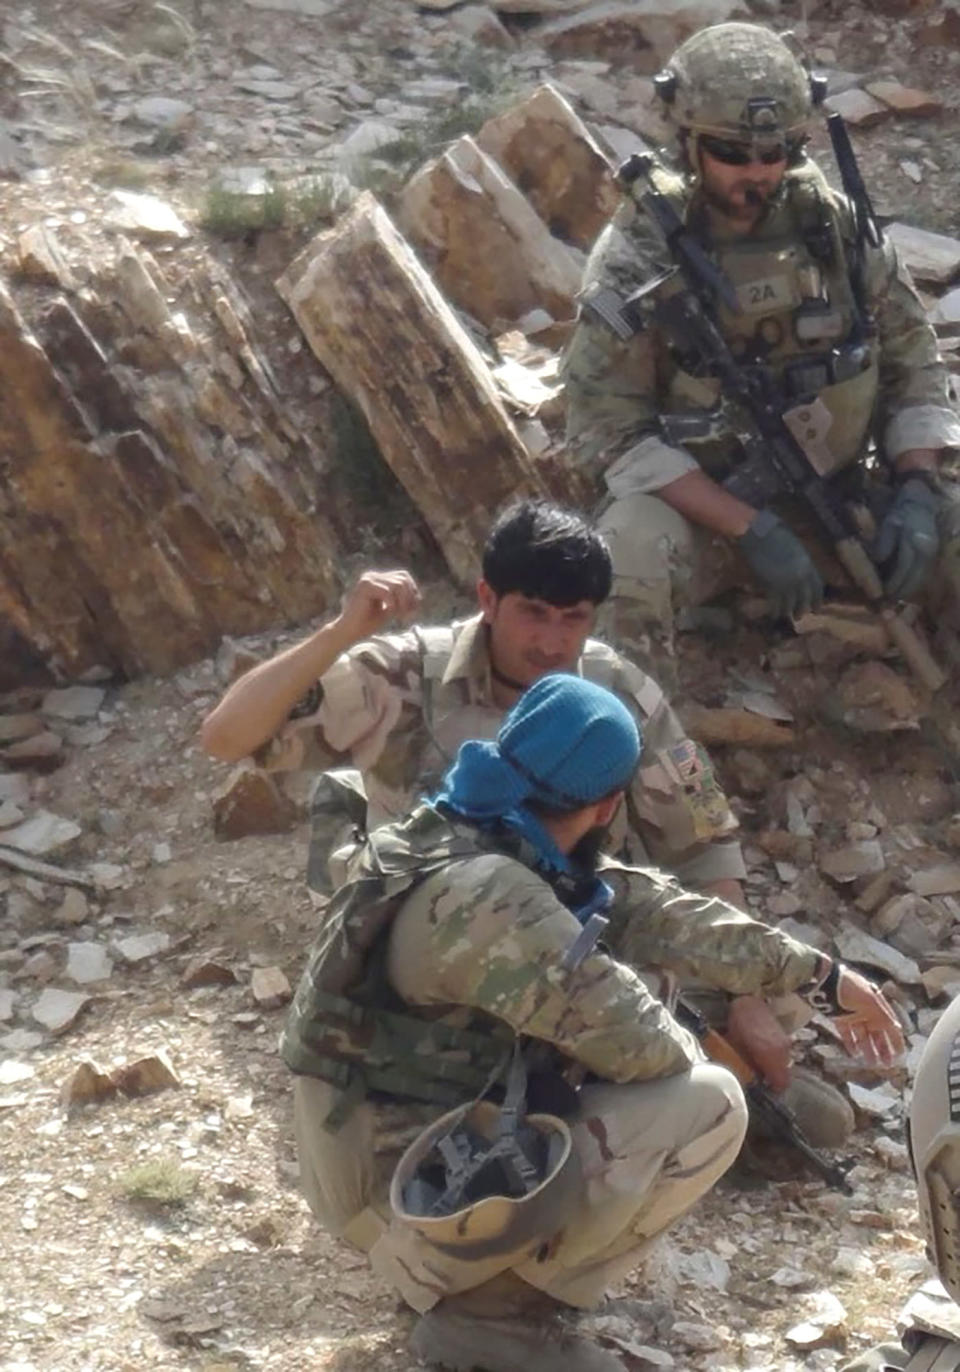 In this undated photo provided by Ryan Brummond, Mohammad Khalid Wardak, center, speaks to a U.S. solider in Afghanistan in Afghanistan. Khalid, as he's called by his friends, had no intention of leaving Afghanistan, where he was a high-profile national police officer who'd worked alongside American special forces to defeat the Taliban. Then with stunning speed, his government collapsed. Now he is in hiding with his wife and four children, wounded and hunted by the Taliban, desperately hoping that American officials will repay his loyalty by helping his family escape almost certain death. (Ryan Brummond via AP)